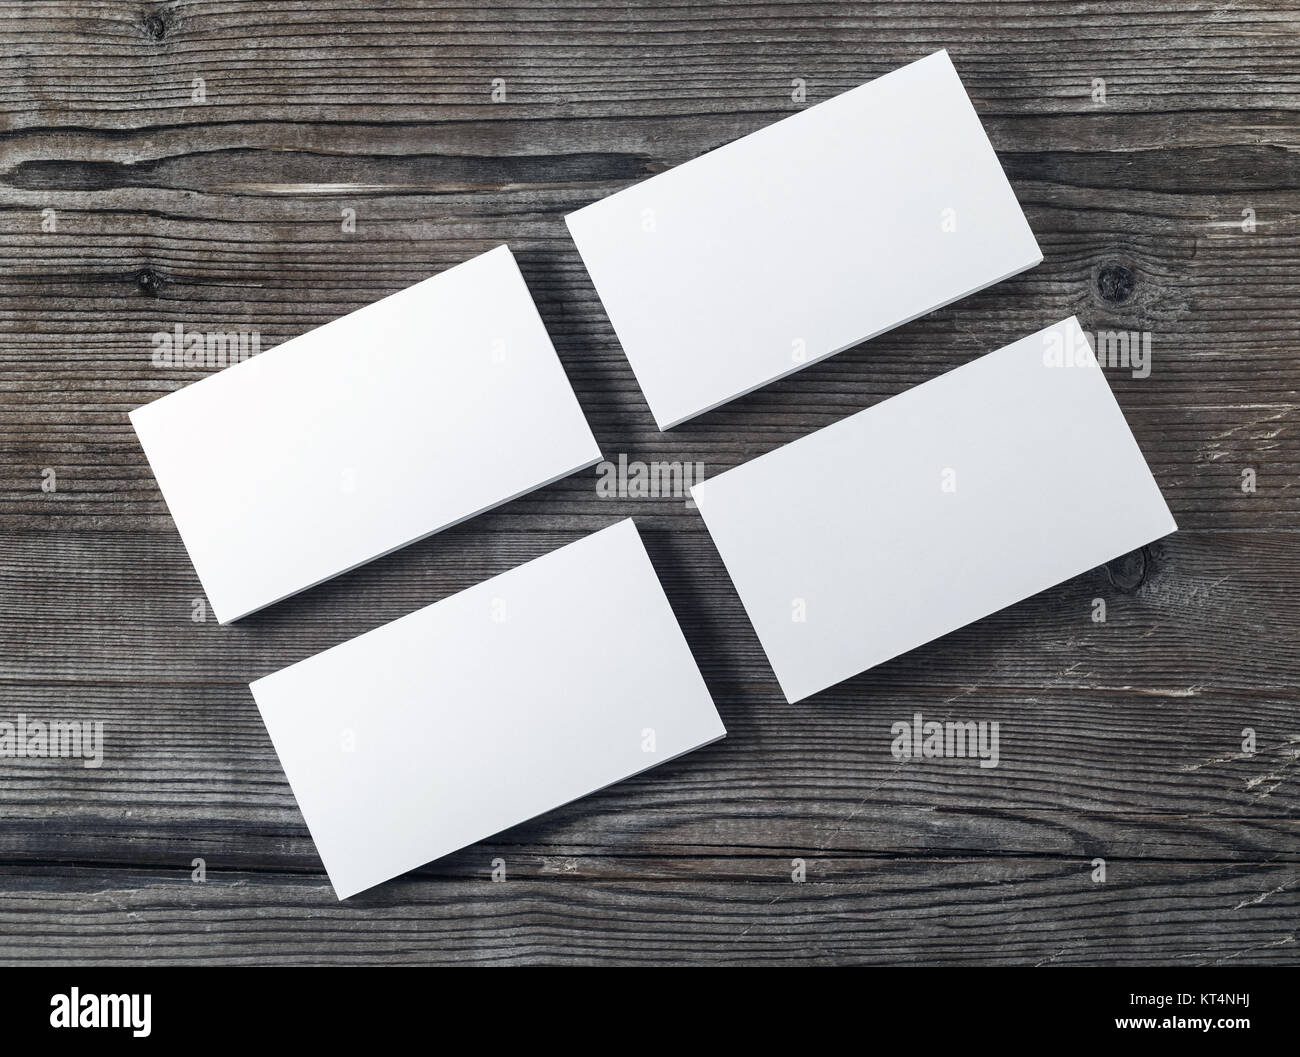 Blank piles of business cards stock photo 169749822 alamy blank piles of business cards reheart Image collections